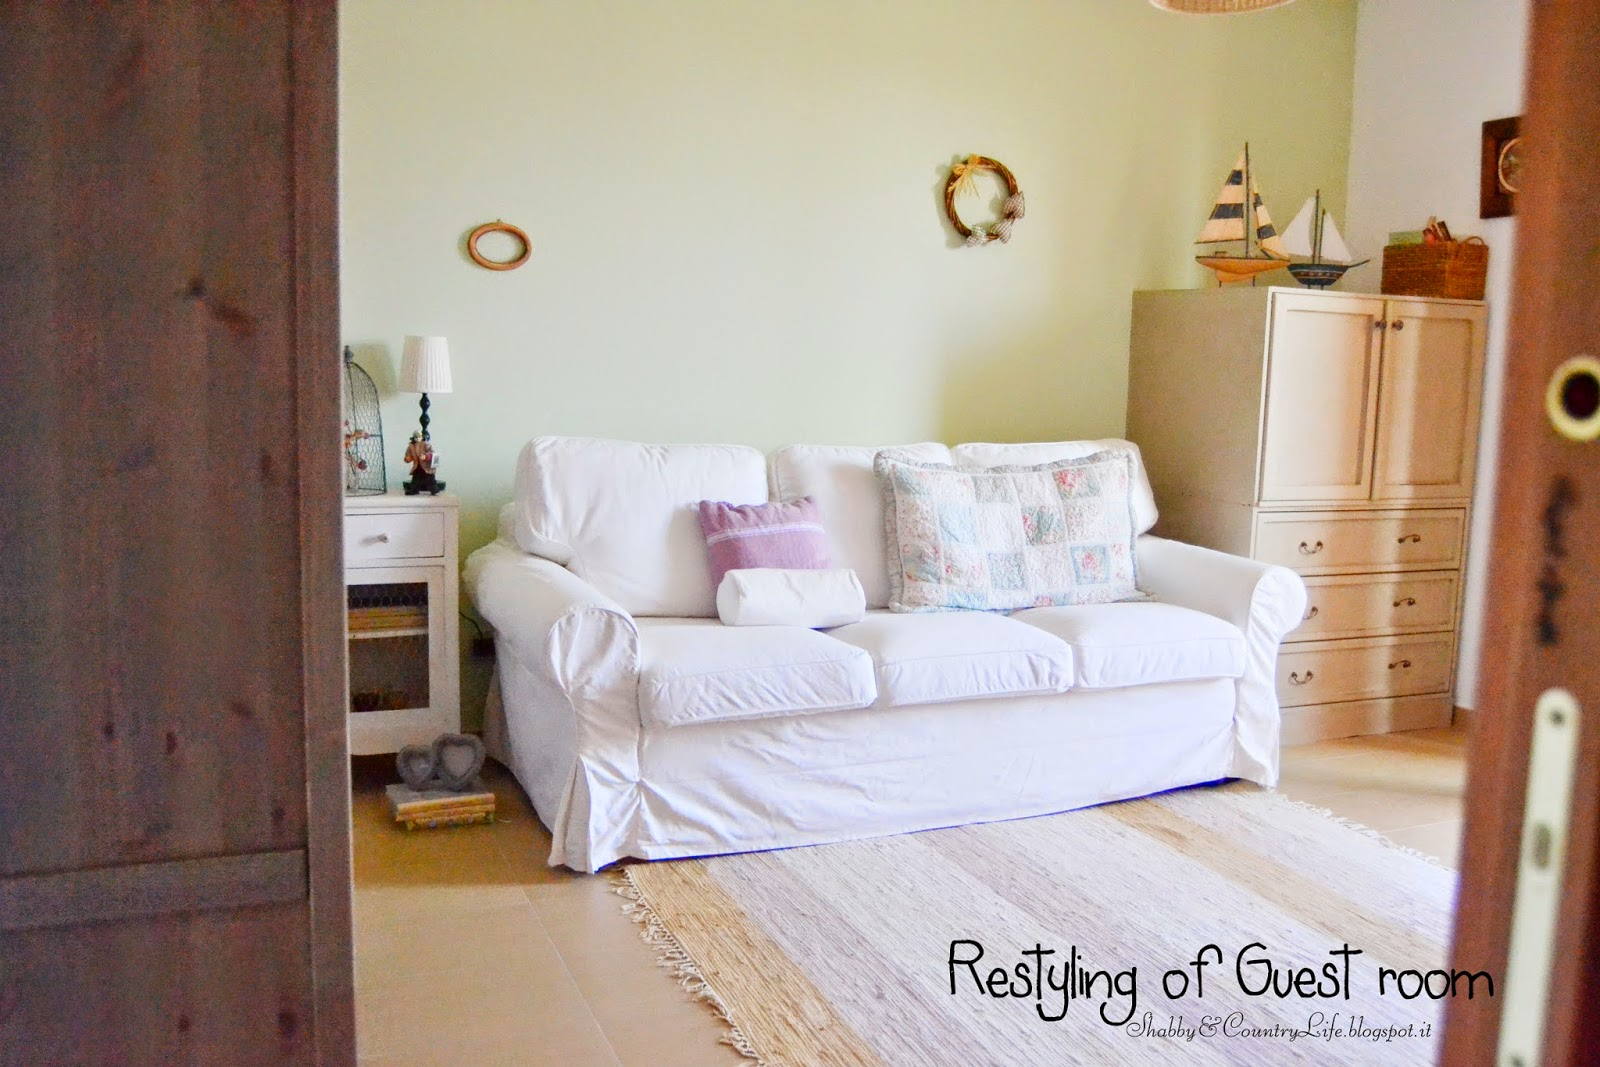 Restyling of my guest room - shabby&countrylife.blogspot.it